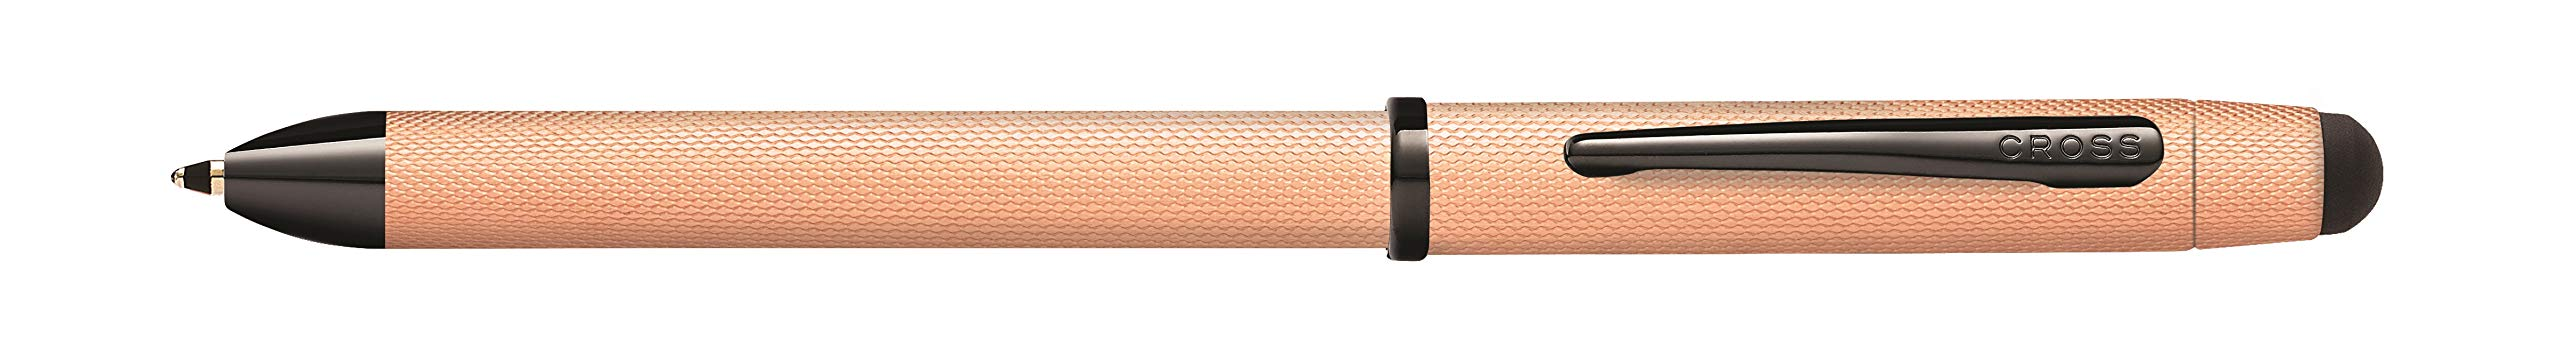 Cross Tech3+ Brushed Rose-Gold PVD Multifunction Pen with Stylus and 0.5mm Lead